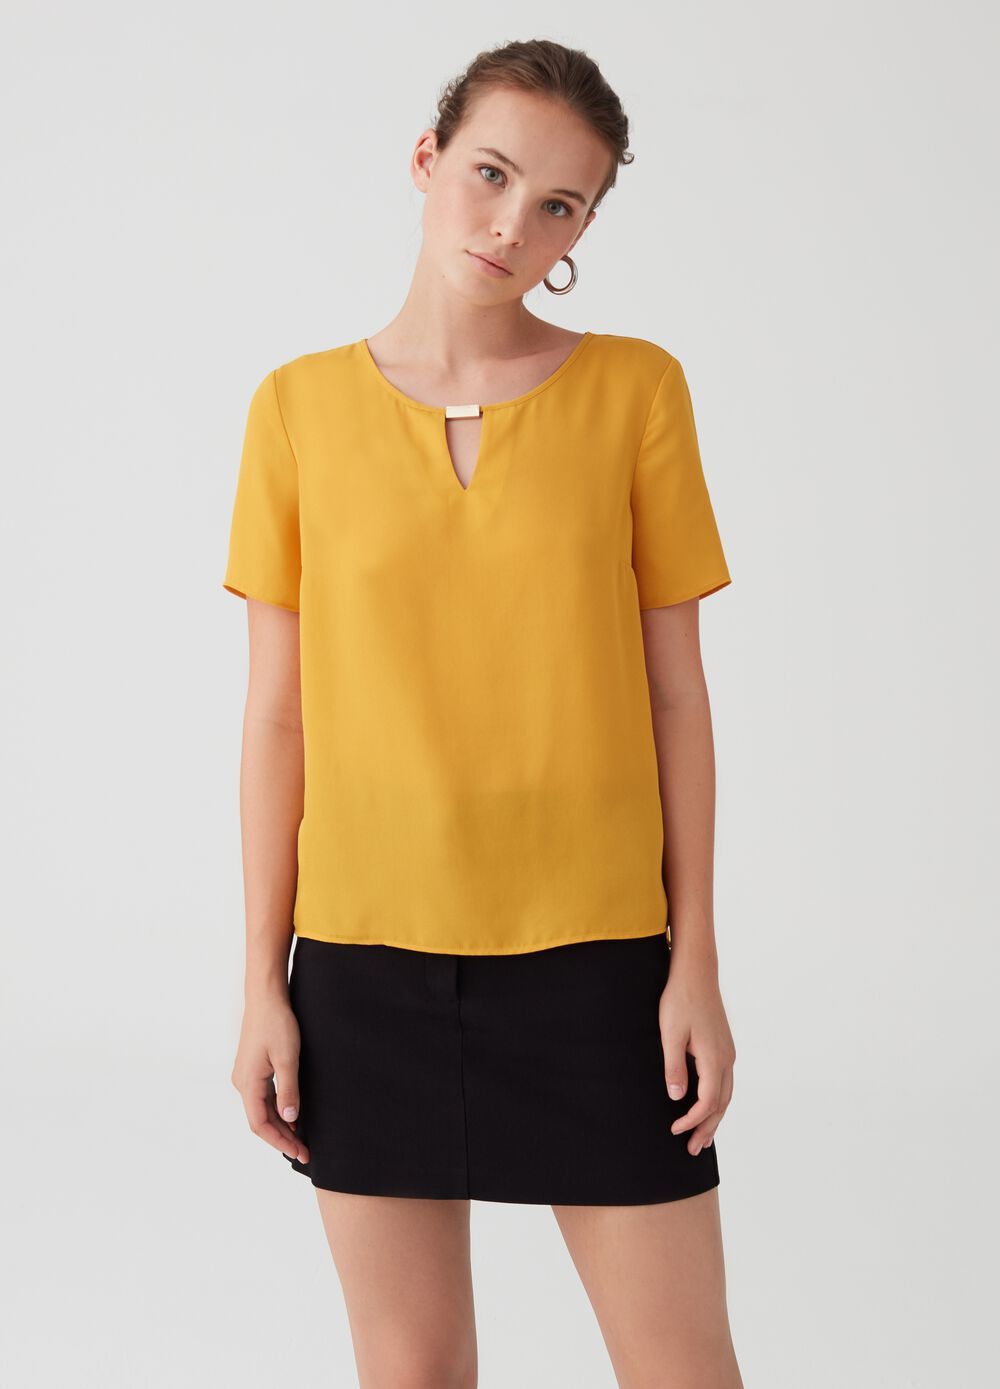 Blouse with short sleeves and metal details